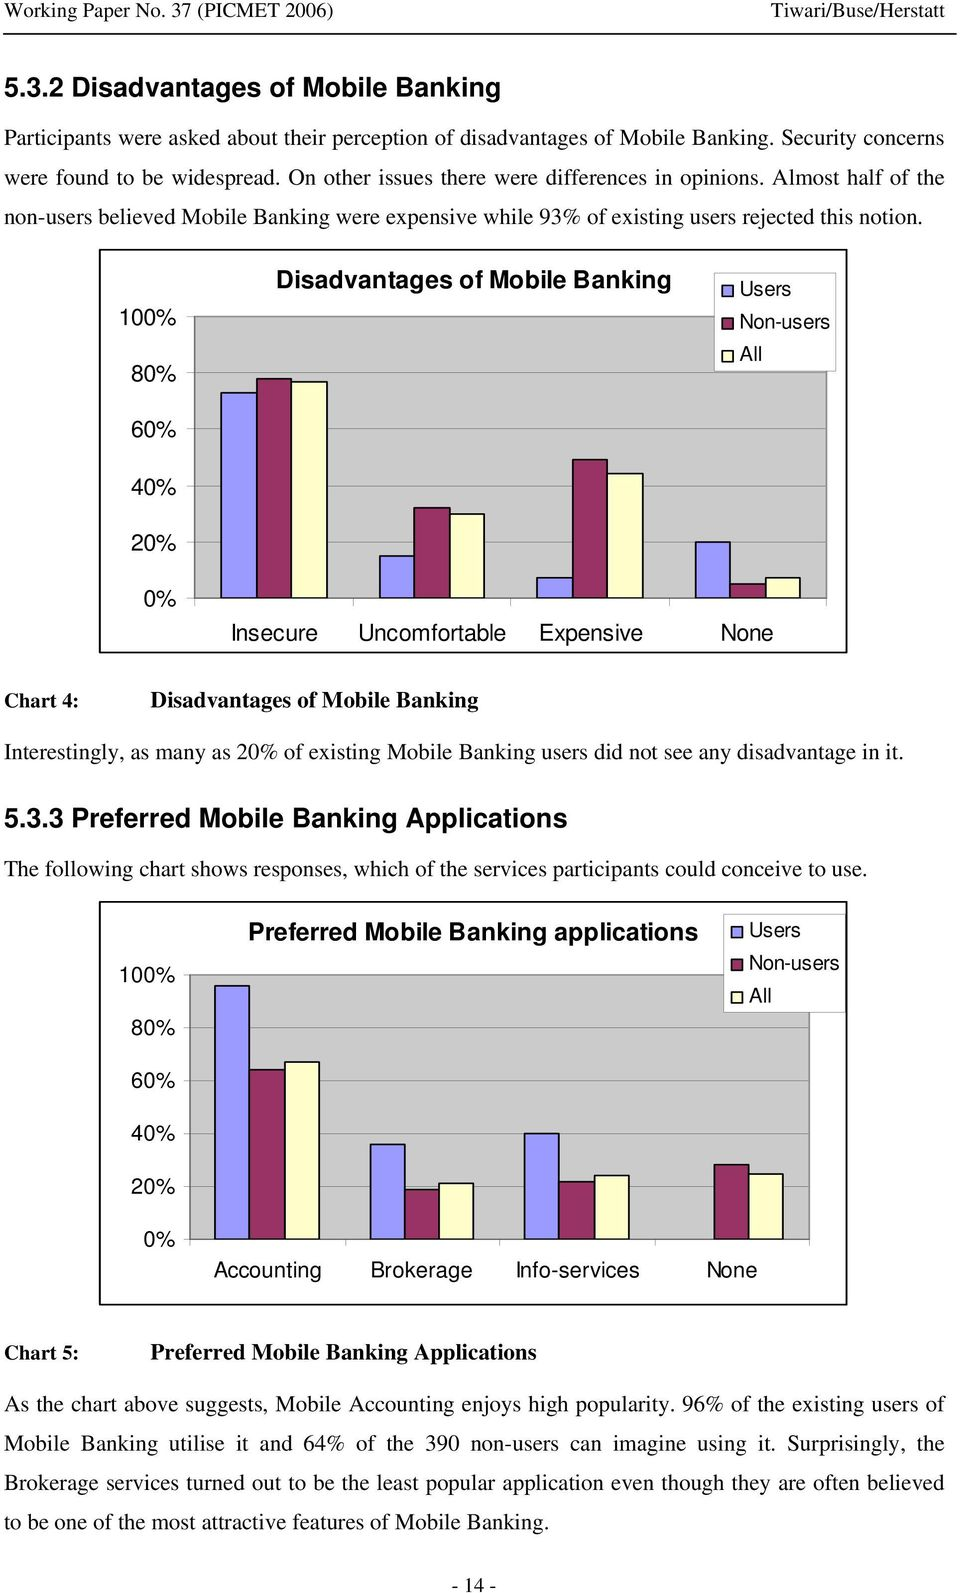 100% 80% 60% 40% 20% Disadvantages of Mobile Banking Users Non-users All 0% Insecure Uncomfortable Expensive None Chart 4: Disadvantages of Mobile Banking Interestingly, as many as 20% of existing